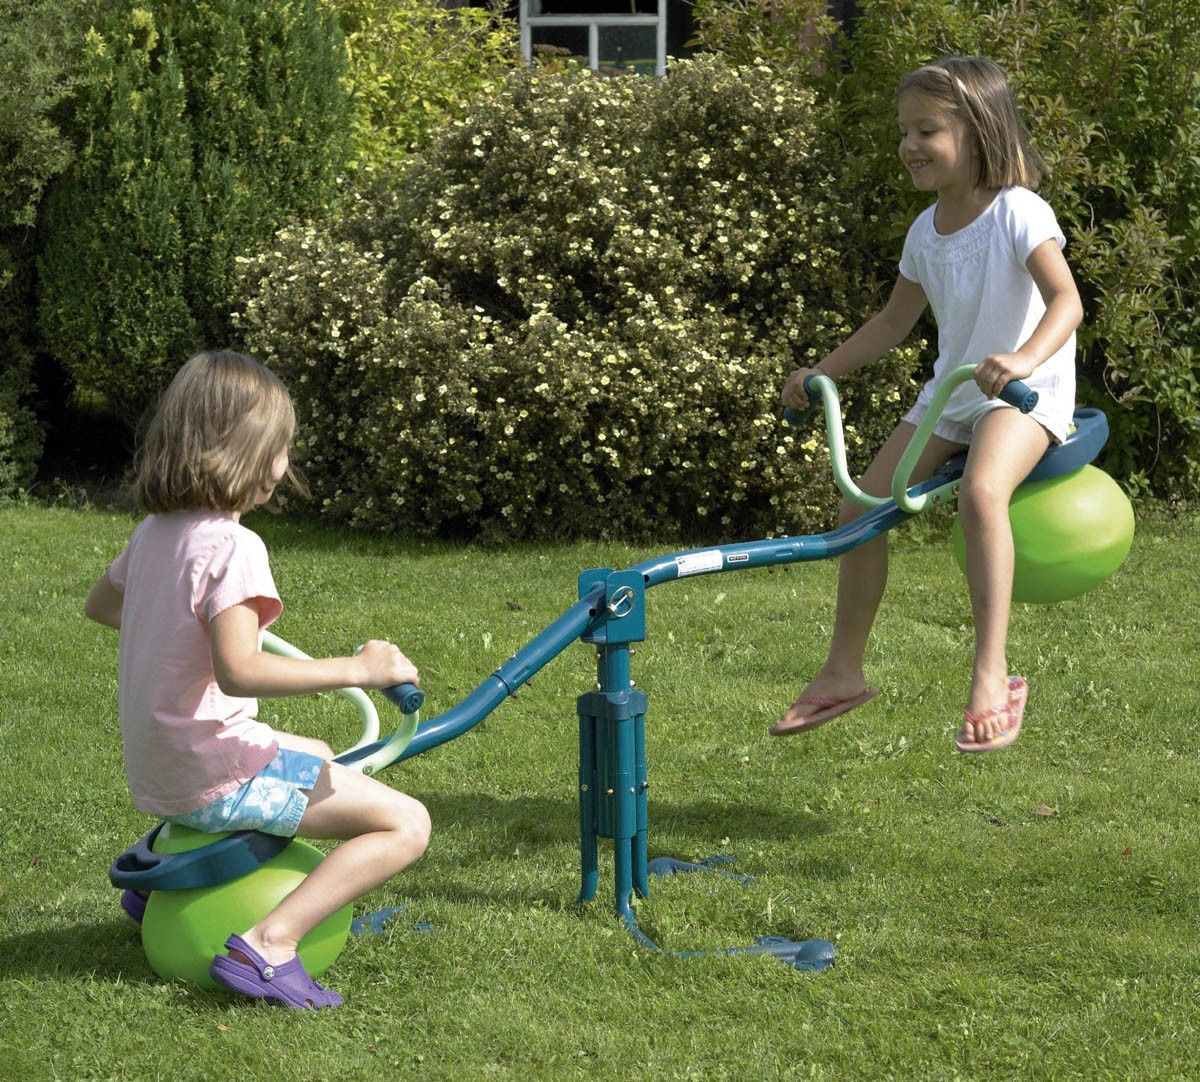 The tp spiro hop seesaw bounces up and down and spins all the way